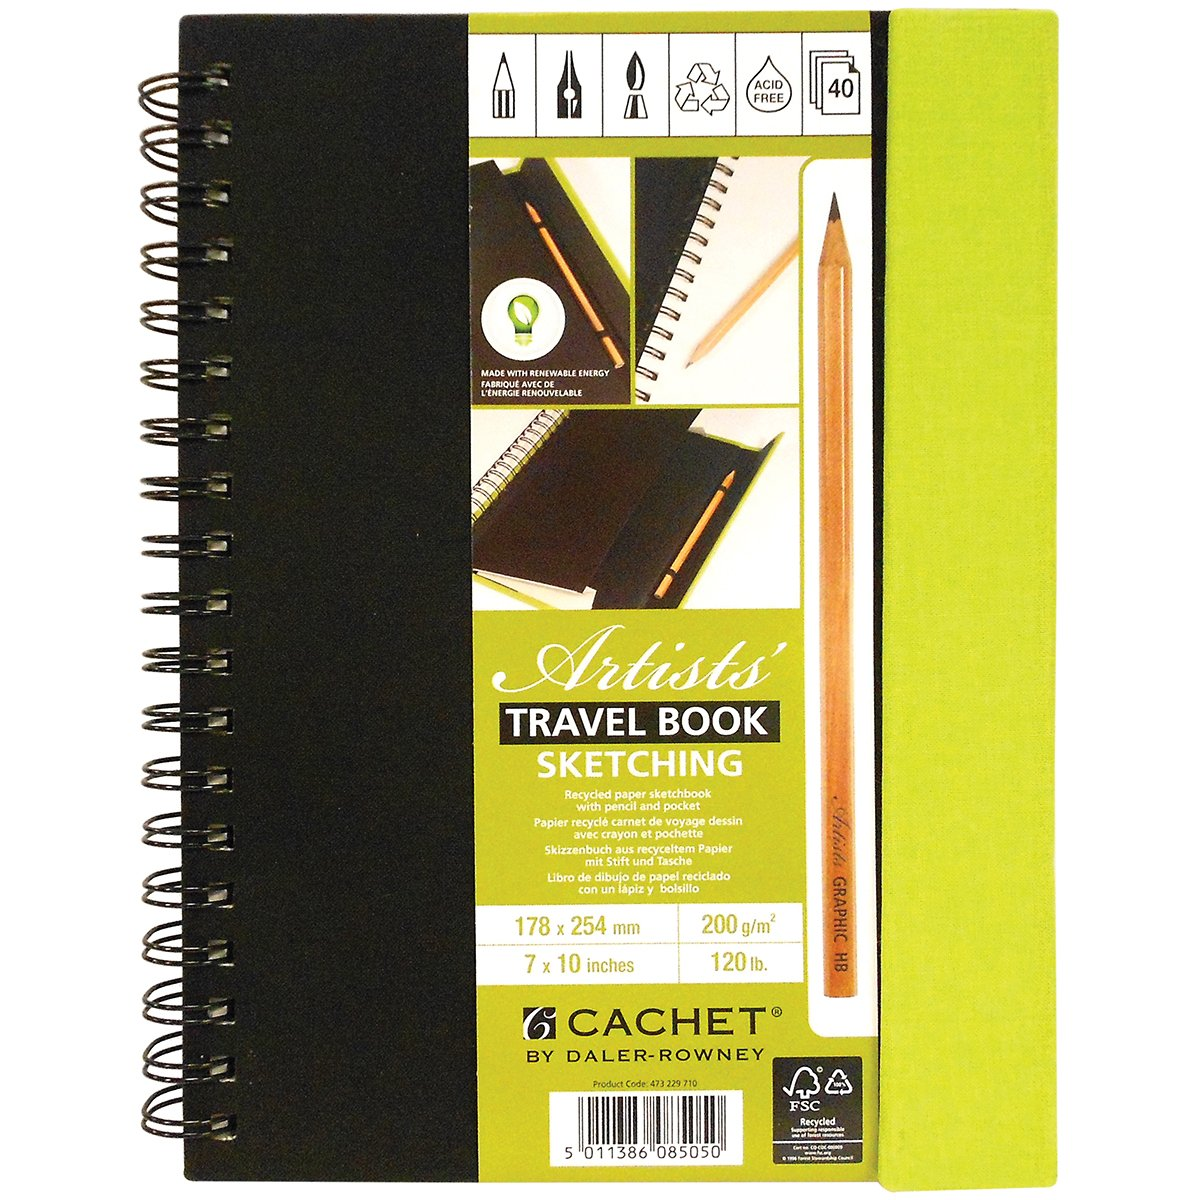 Cachet Travel Sketch Book with Pencil 7''X10'' 120 lb 40 Sheets